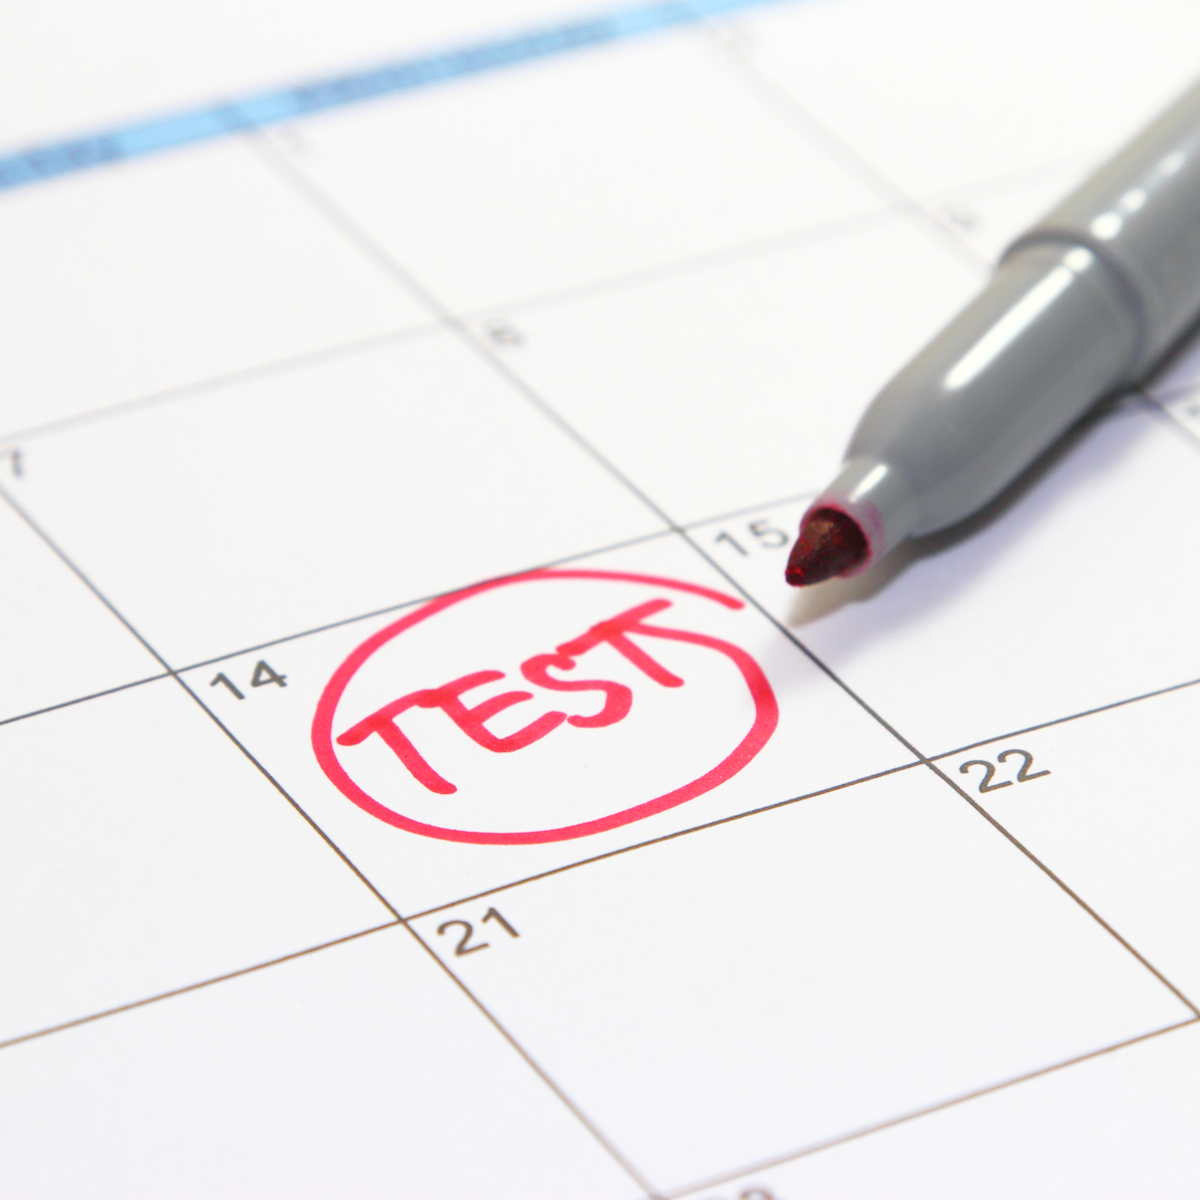 Lsat test dates in Brisbane